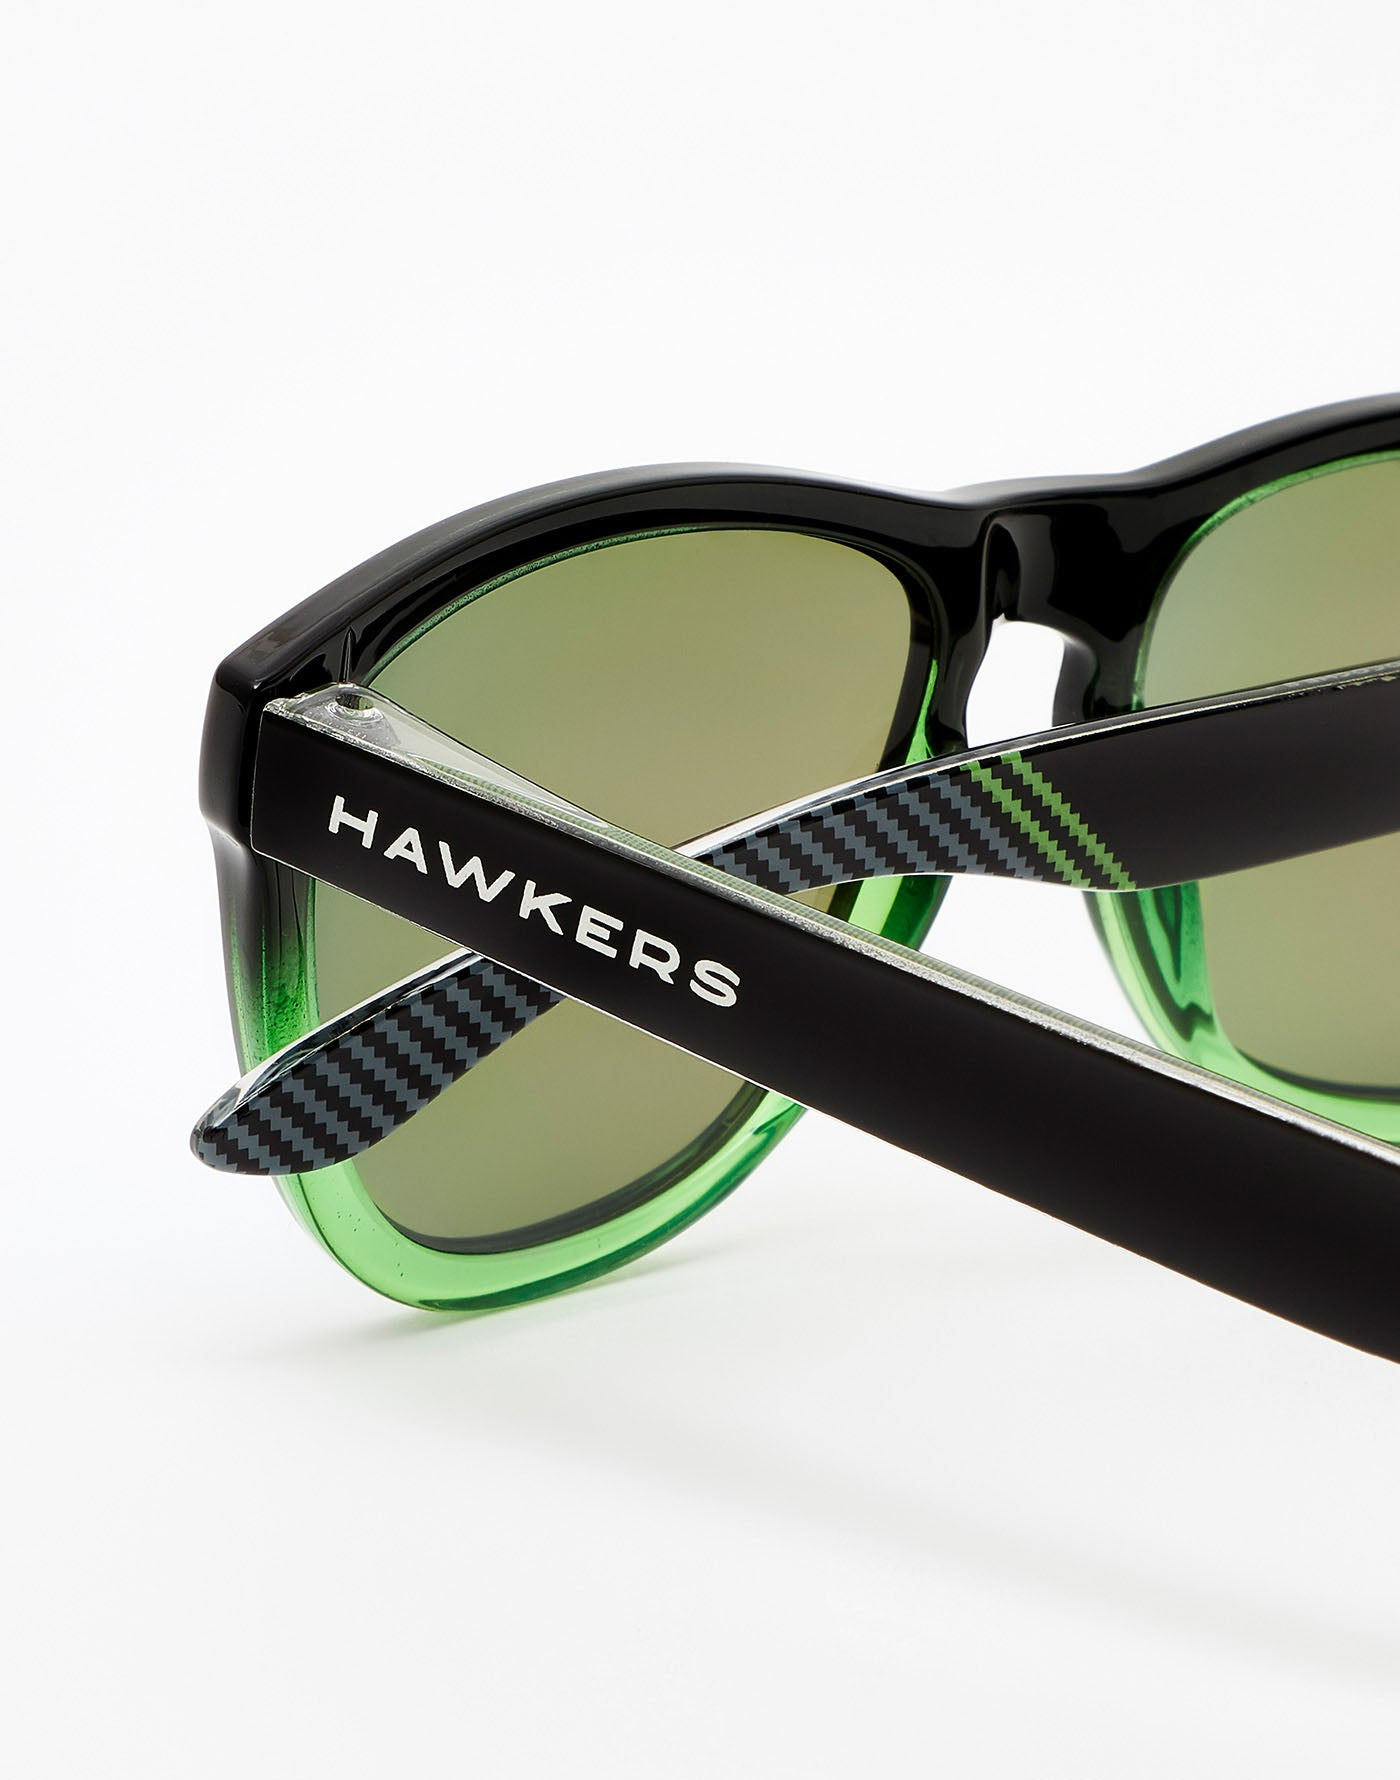 Hawkers x Forocoches · Fusion Green One